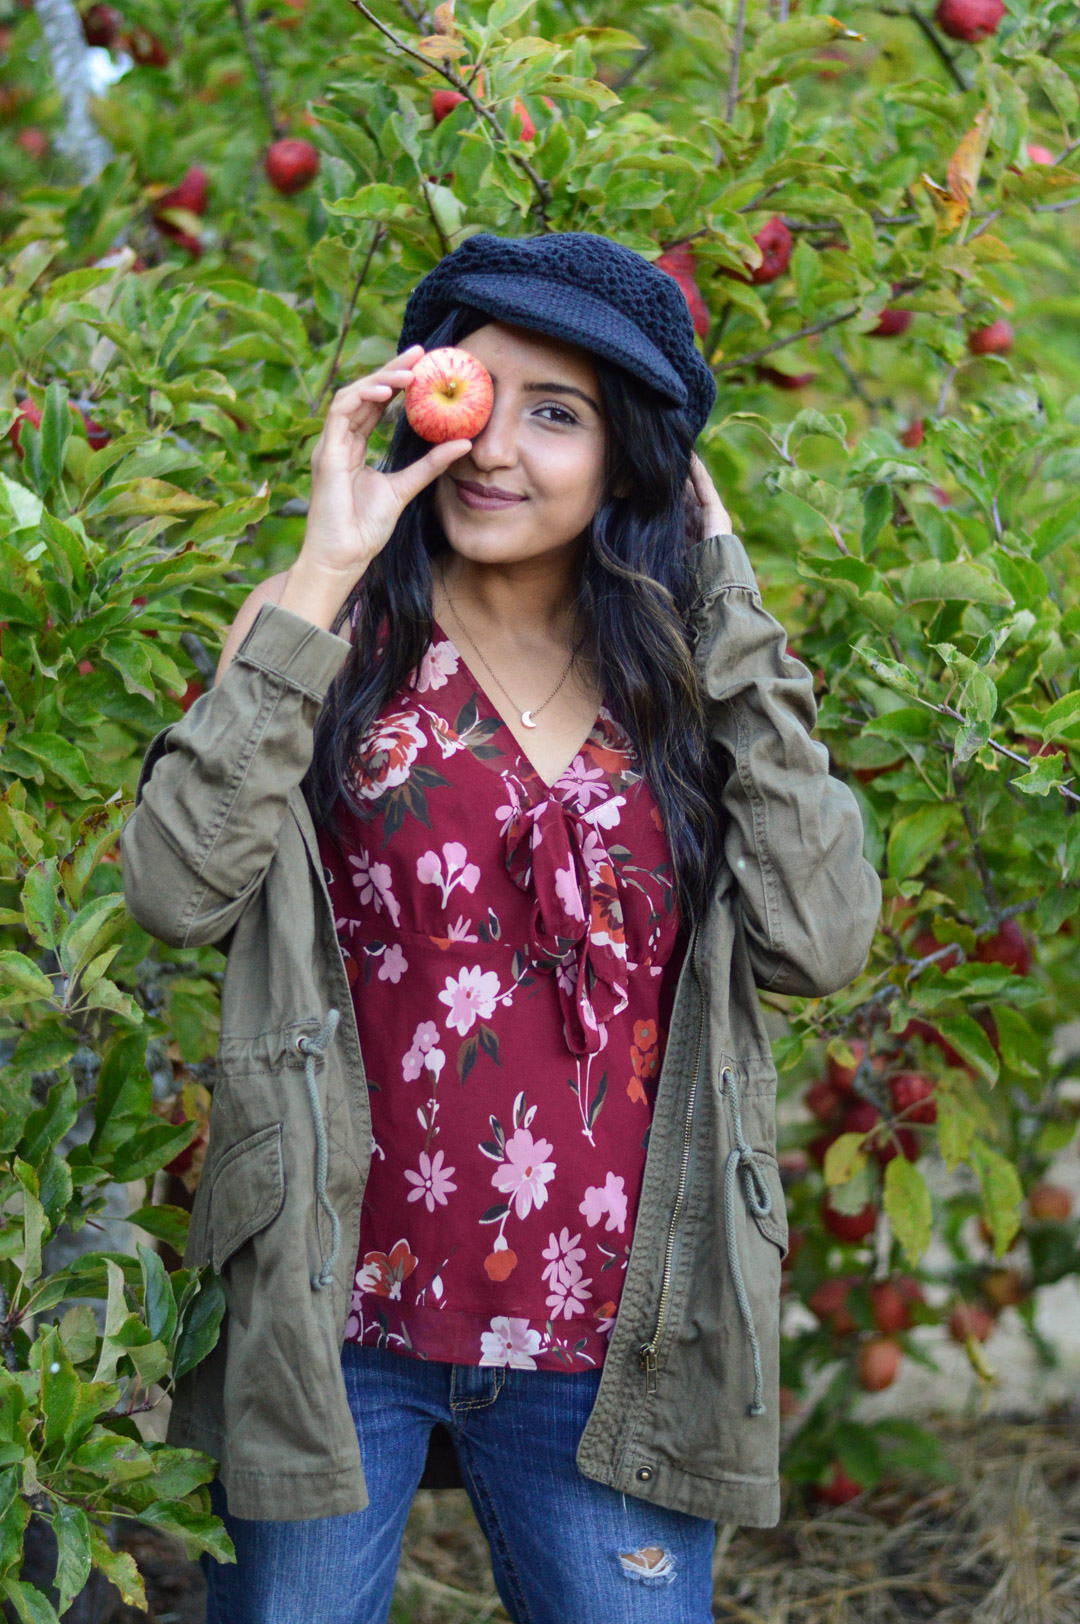 apple-picking-fall-florals-utility-jacket-california-style-activities 11